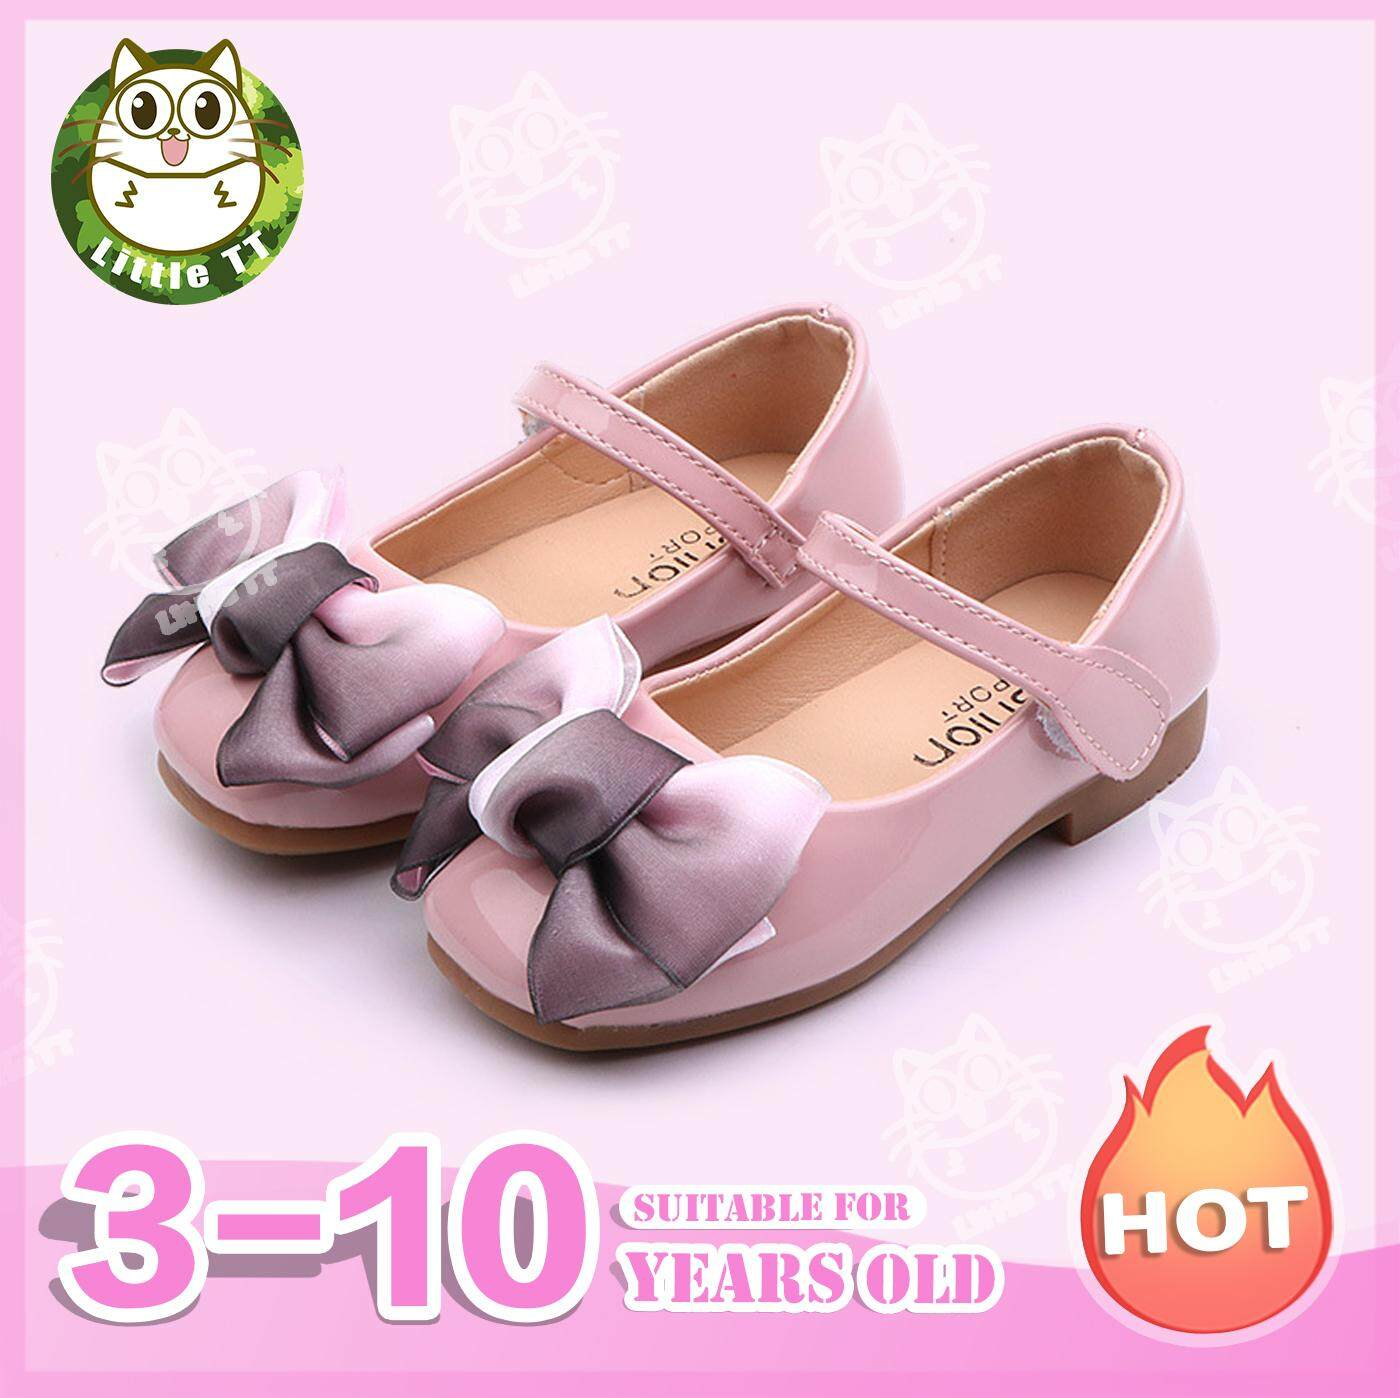 b447c321b7 Little TT Children Shoes Girls Princess Shoes 2019 Spring And Autumn  Versatile Shoes Students Sandals 3 4 5 6 7 8 9 10 Years Old